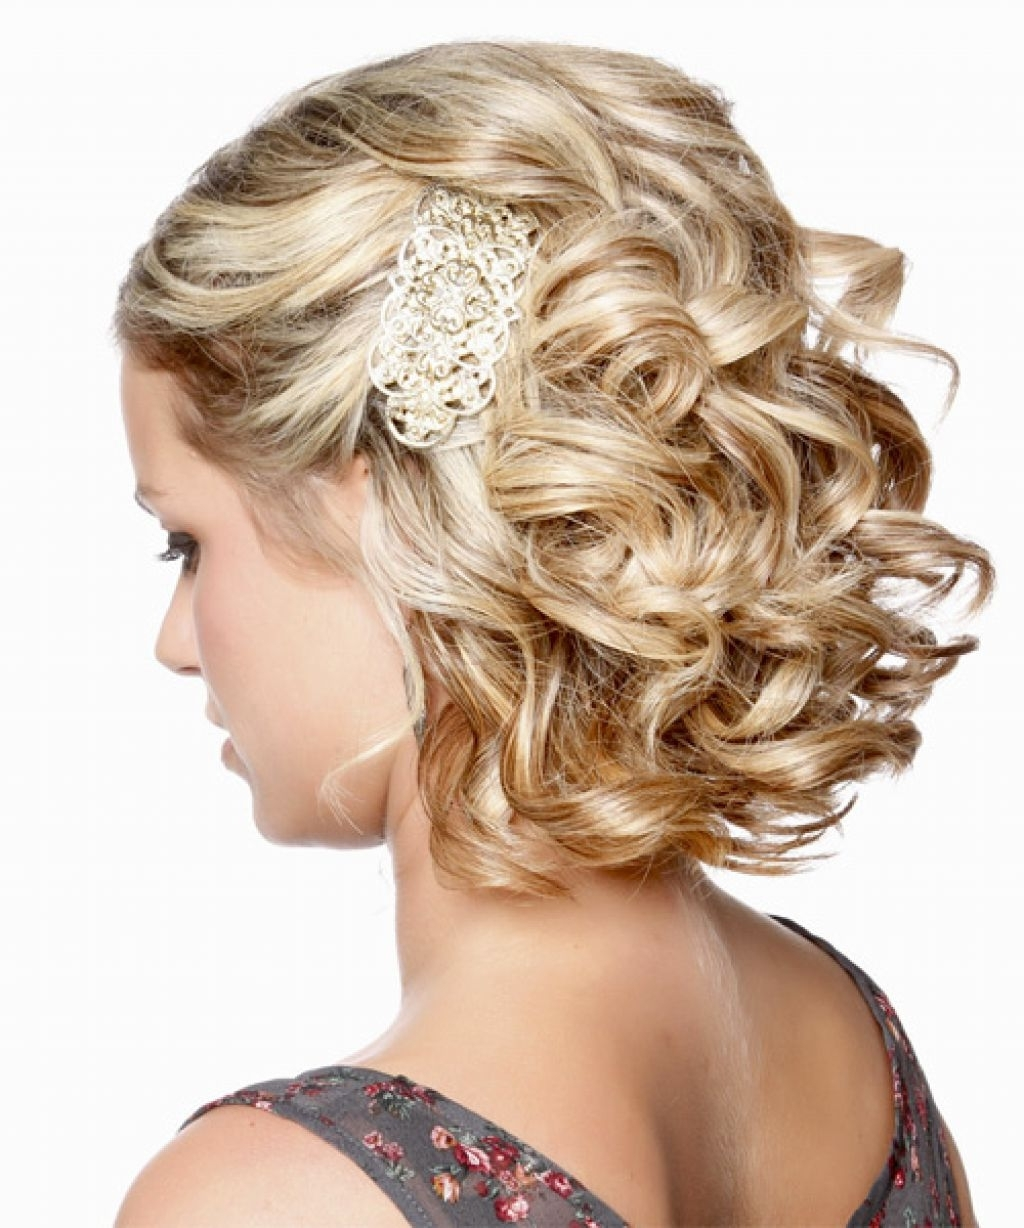 Curly Updo Hairstyle Medium Blonde Side View Inside Curly Updo Hairstyles For Medium Hair (View 6 of 15)